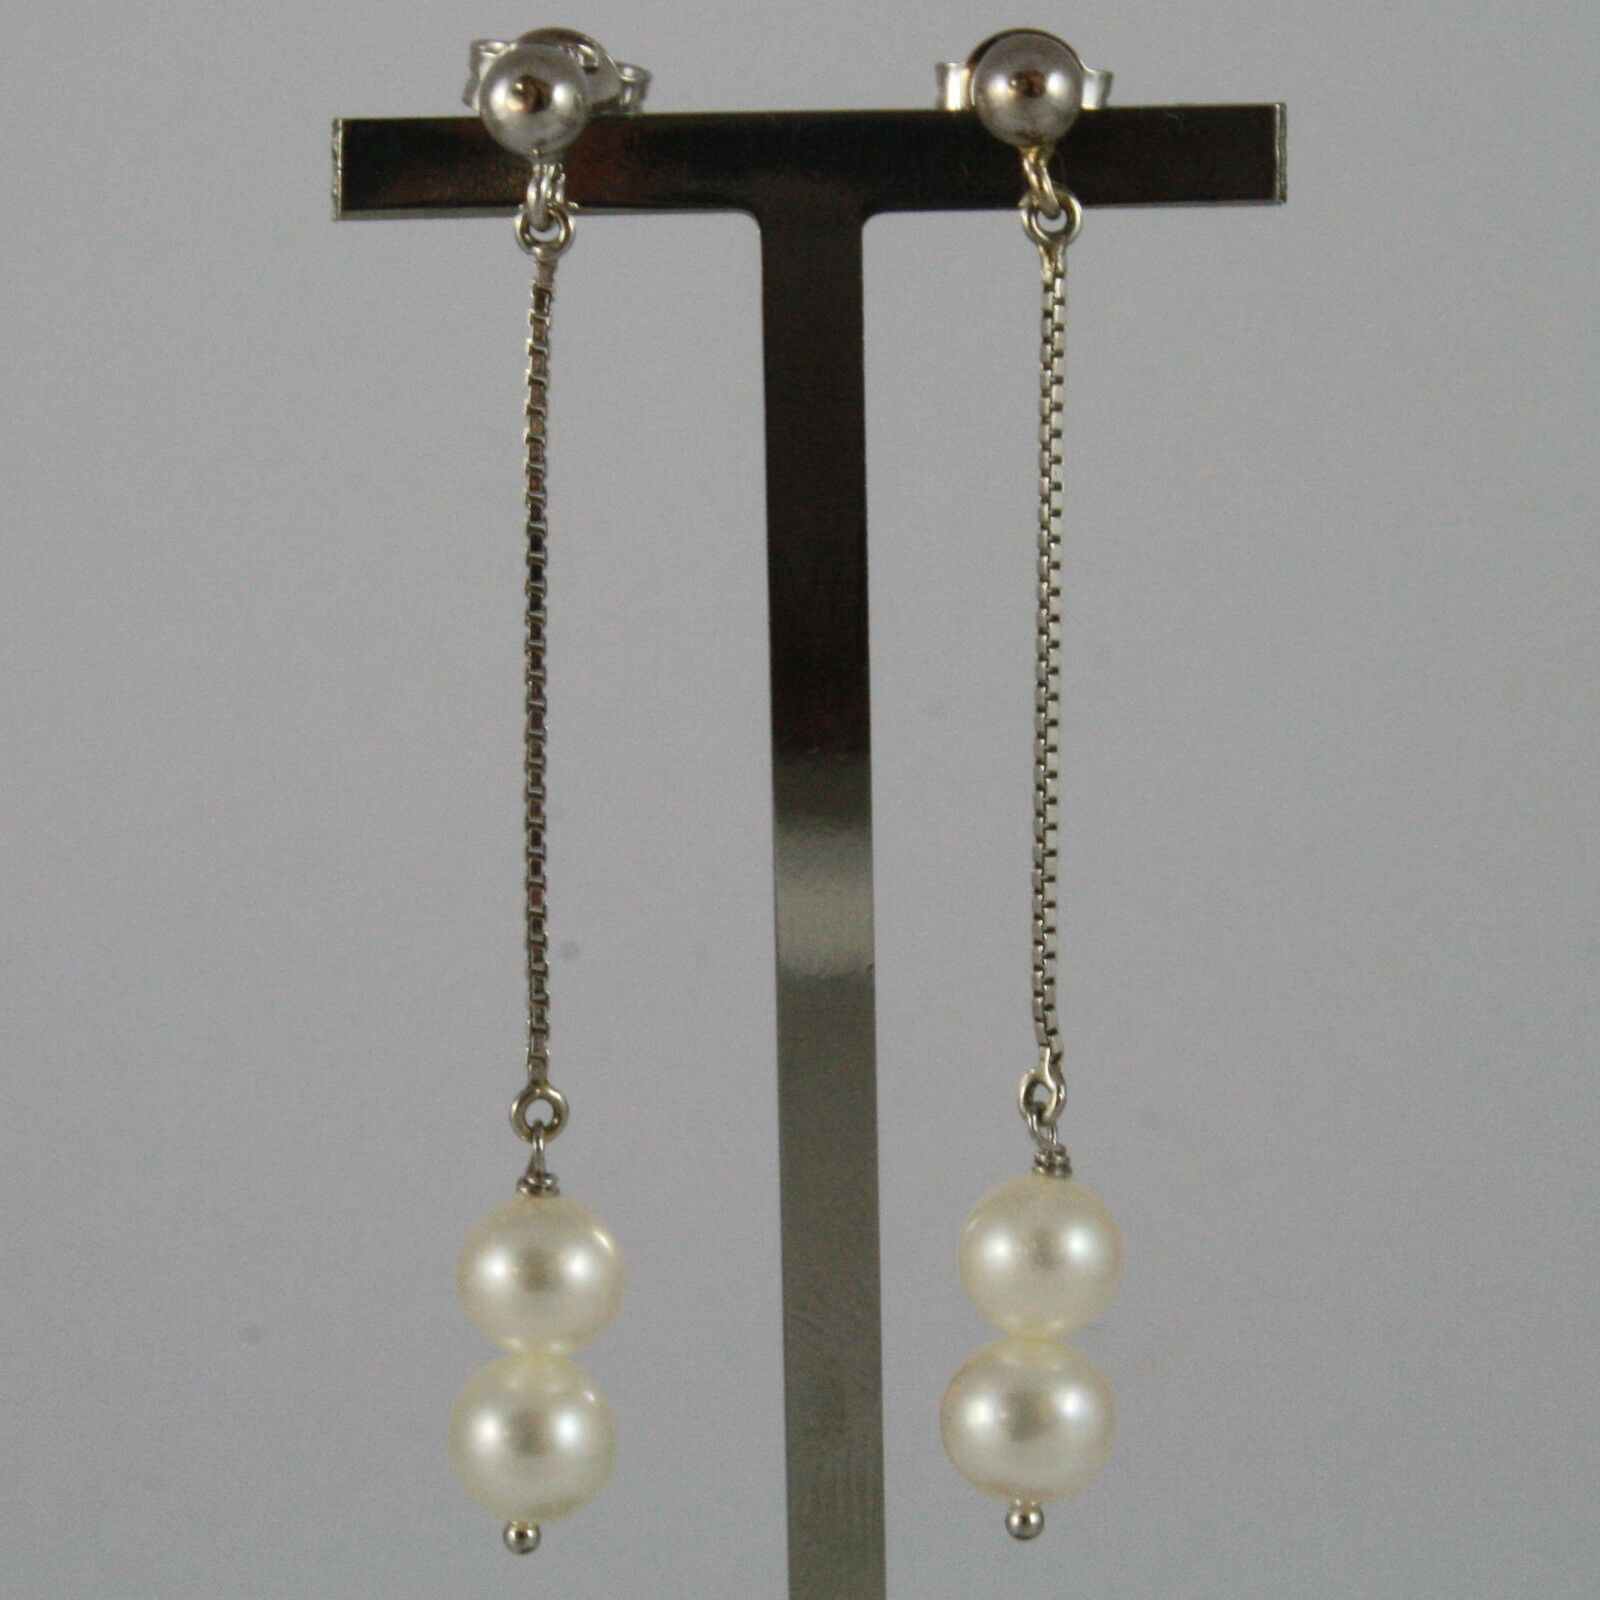 White Gold Earrings 750 18K with White Pearls of Water Dolce Long 5,5 CM